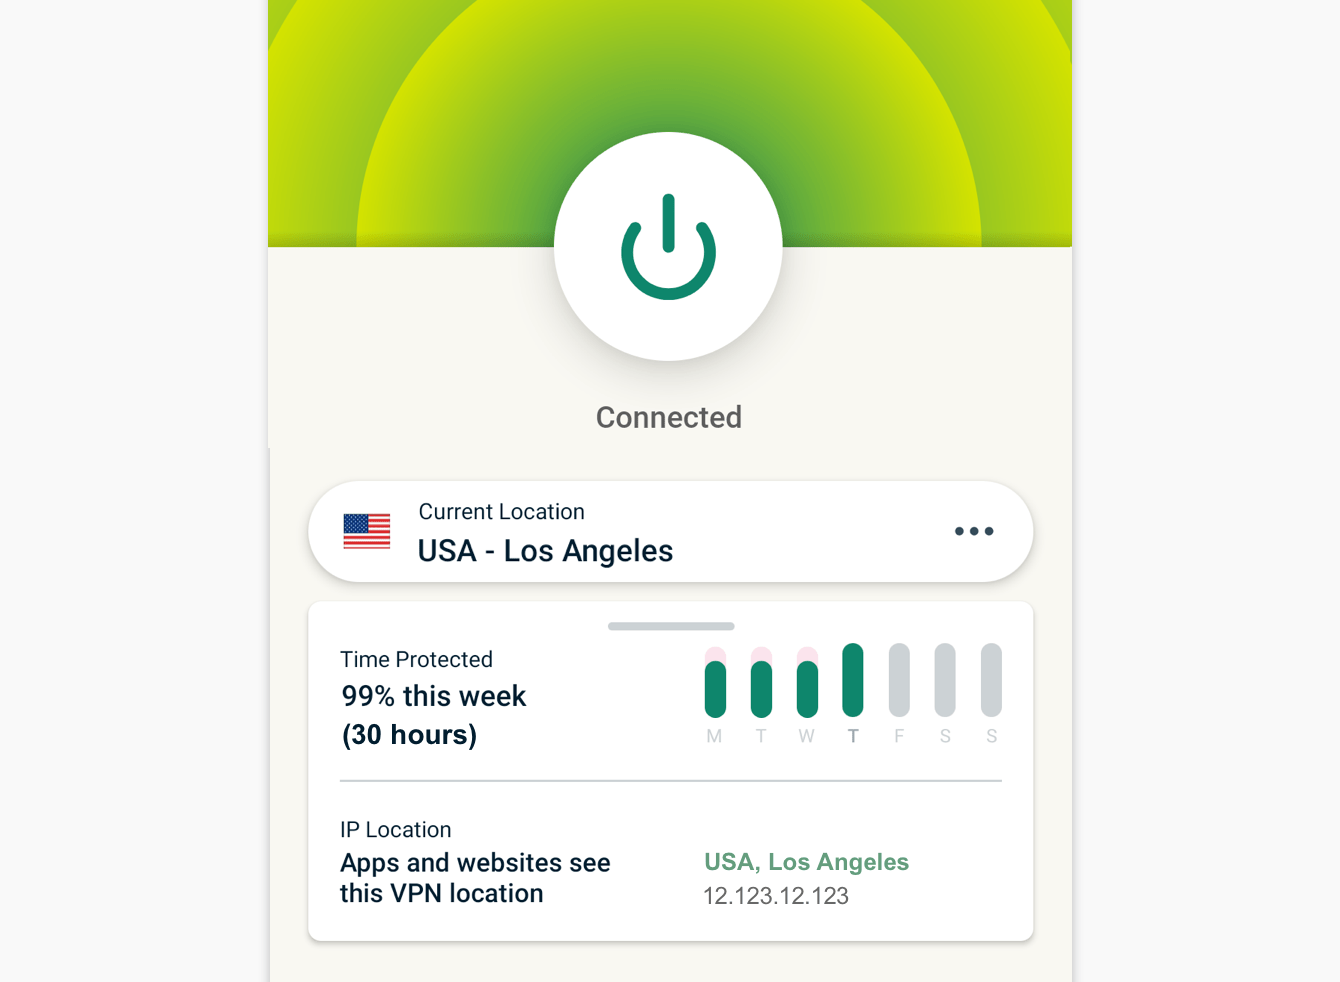 Protection Summary shows a weekly overview of how long you were connected to the VPN.